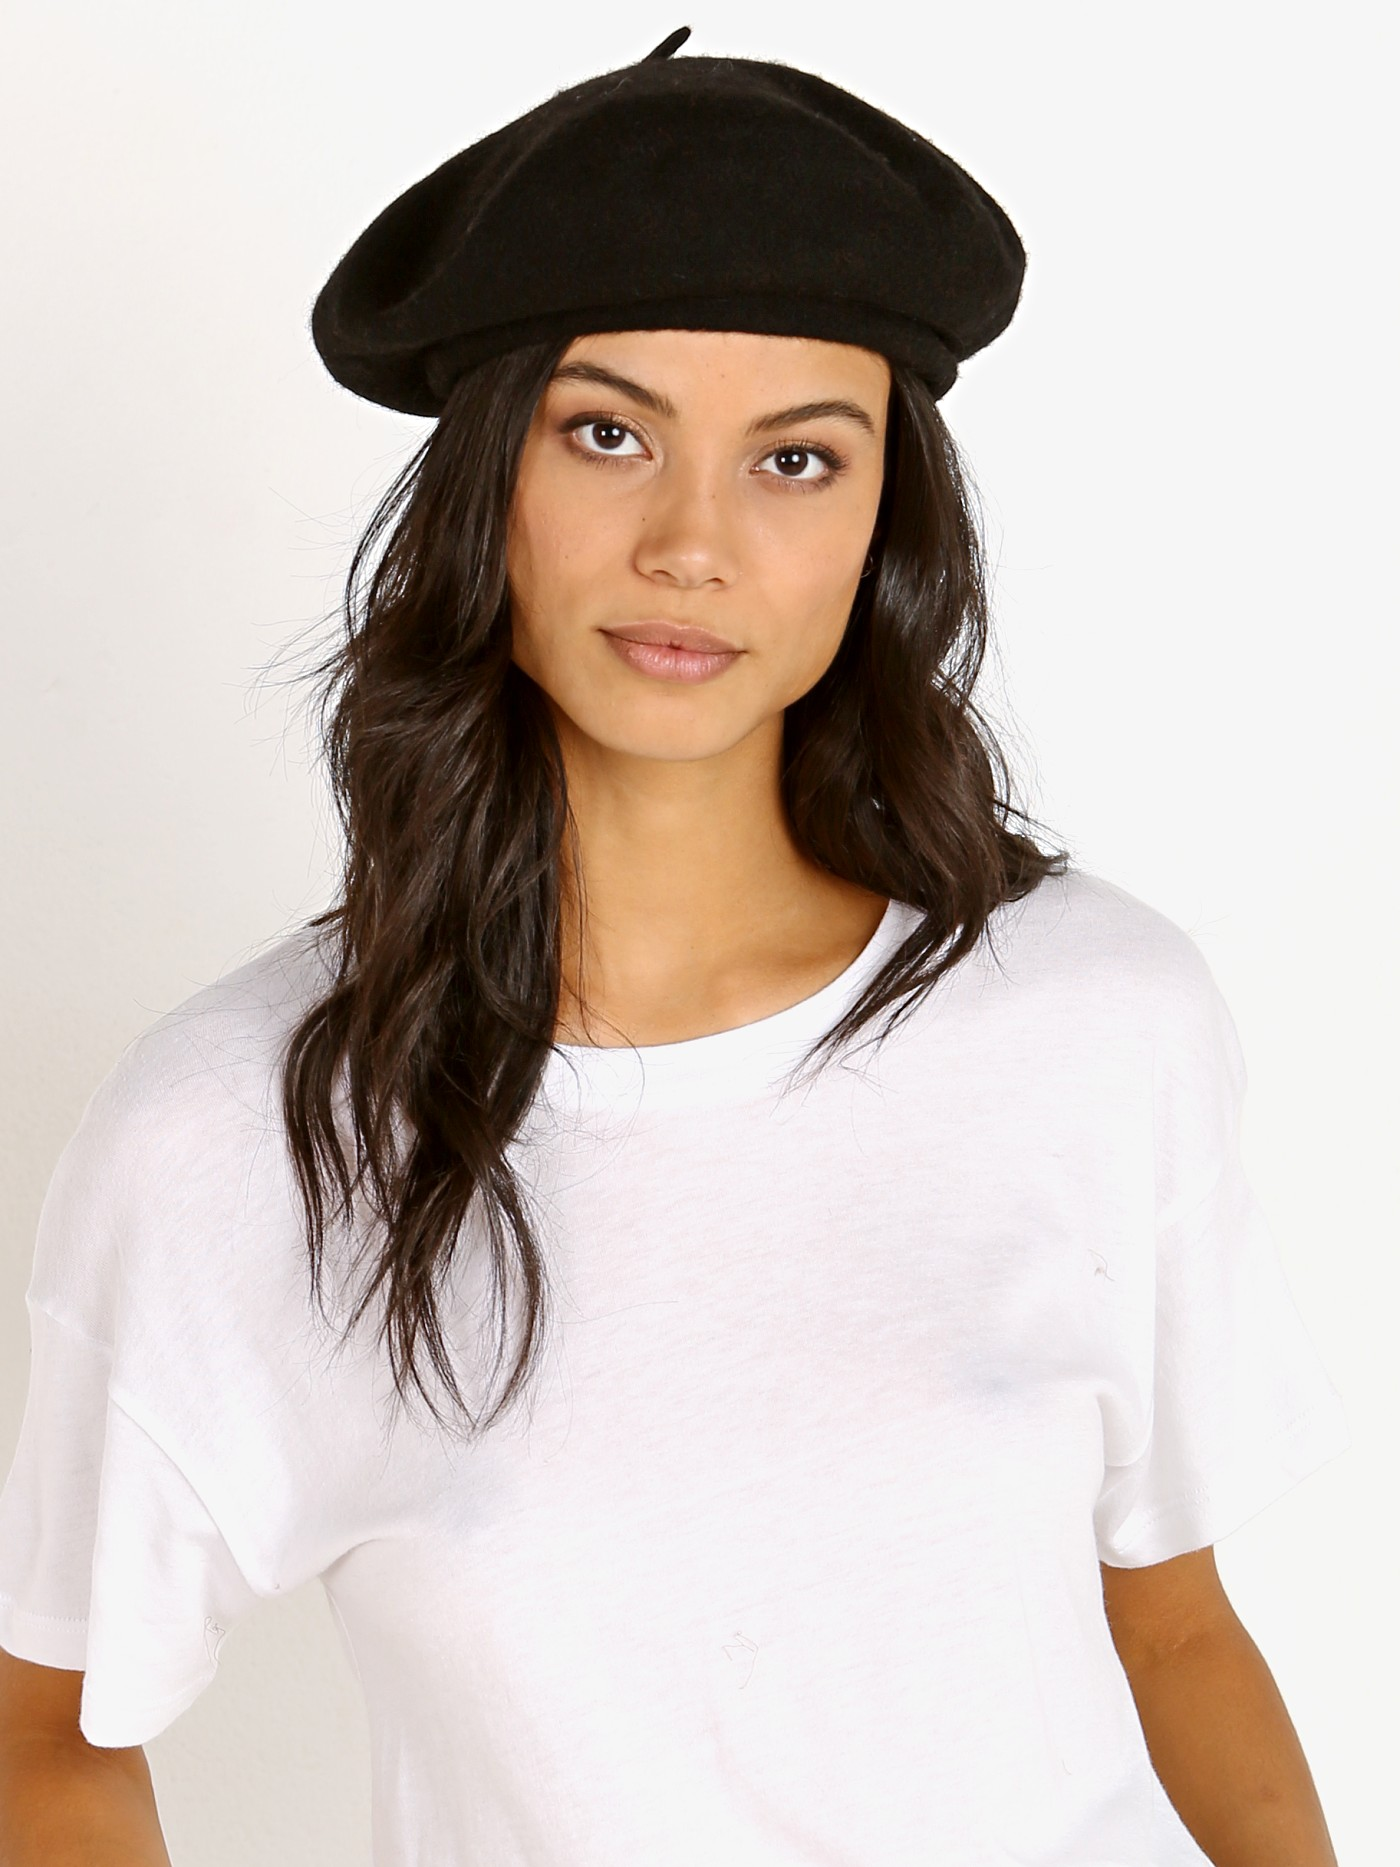 54aaccd85ae87 Brixton Audrey Beret Black 00192-Black - Free Shipping at Largo Drive